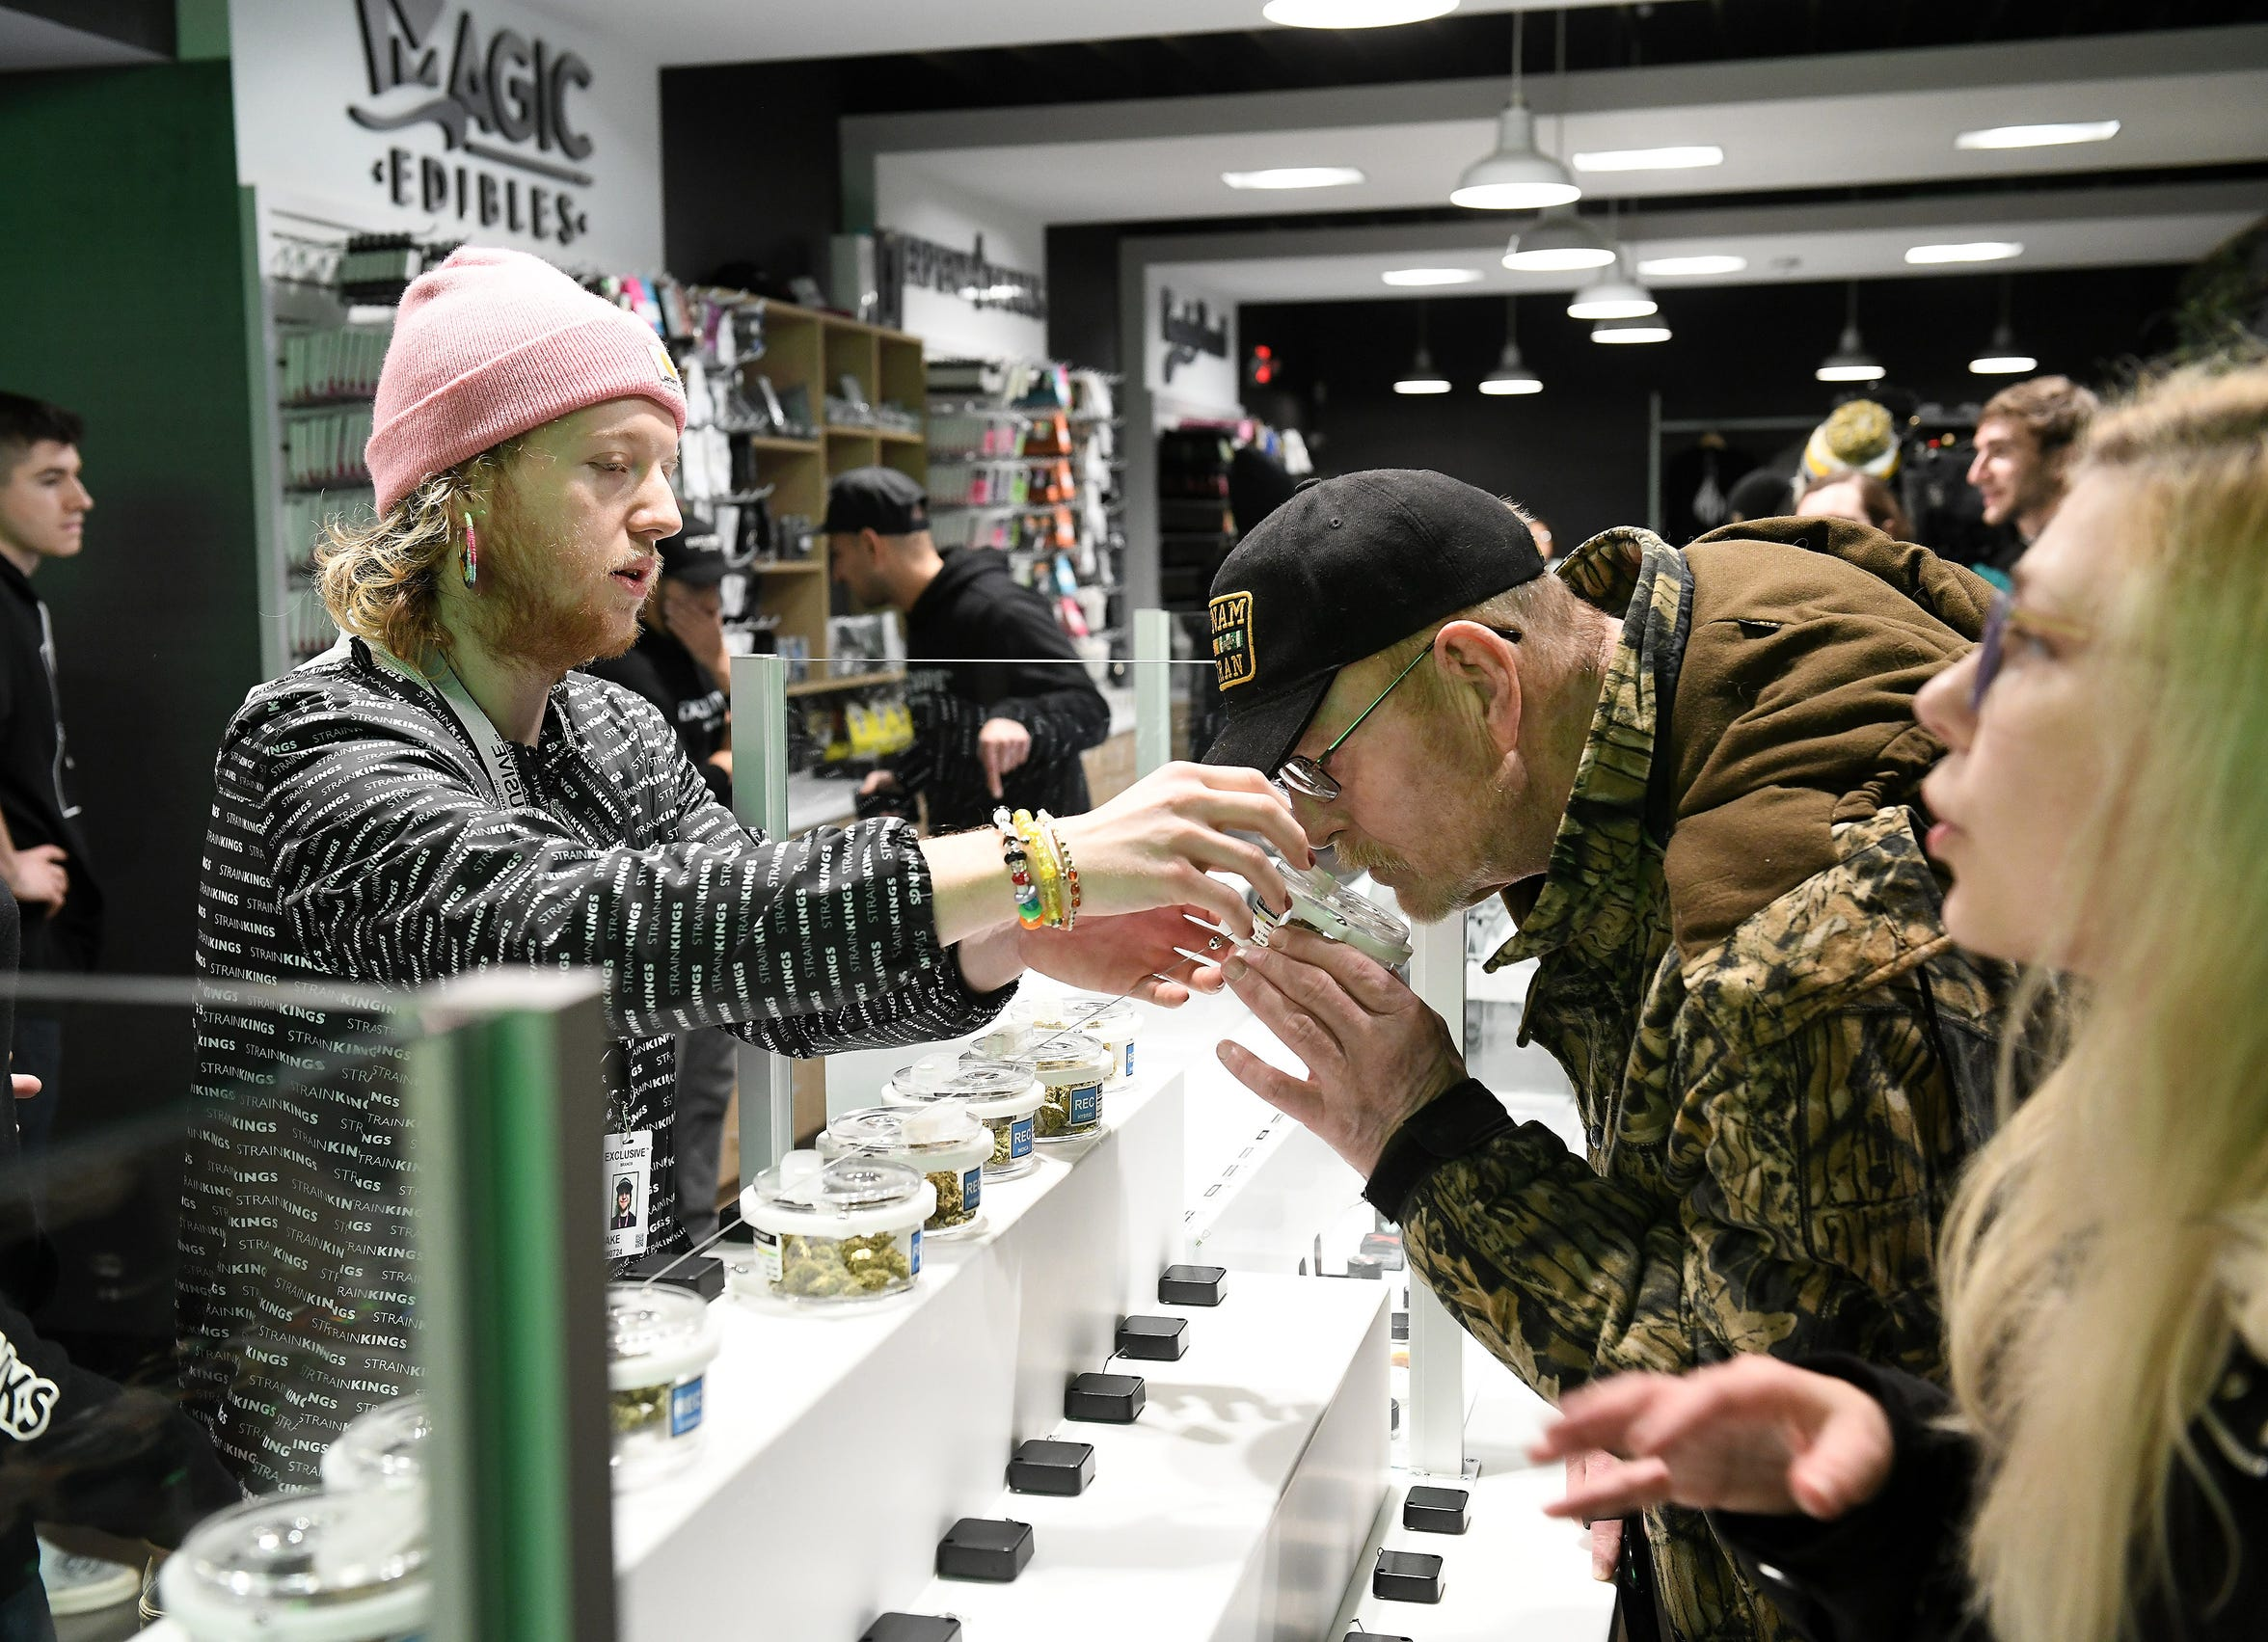 Tender Jacob Samways, left, lets Gregg Etzel, 67, of Dundee smell some marijuana flowers during the first day of sales of recreational marijuana at Exclusive Provisioning Center in Ann Arbor, Mich. on Dec. 1, 2019.